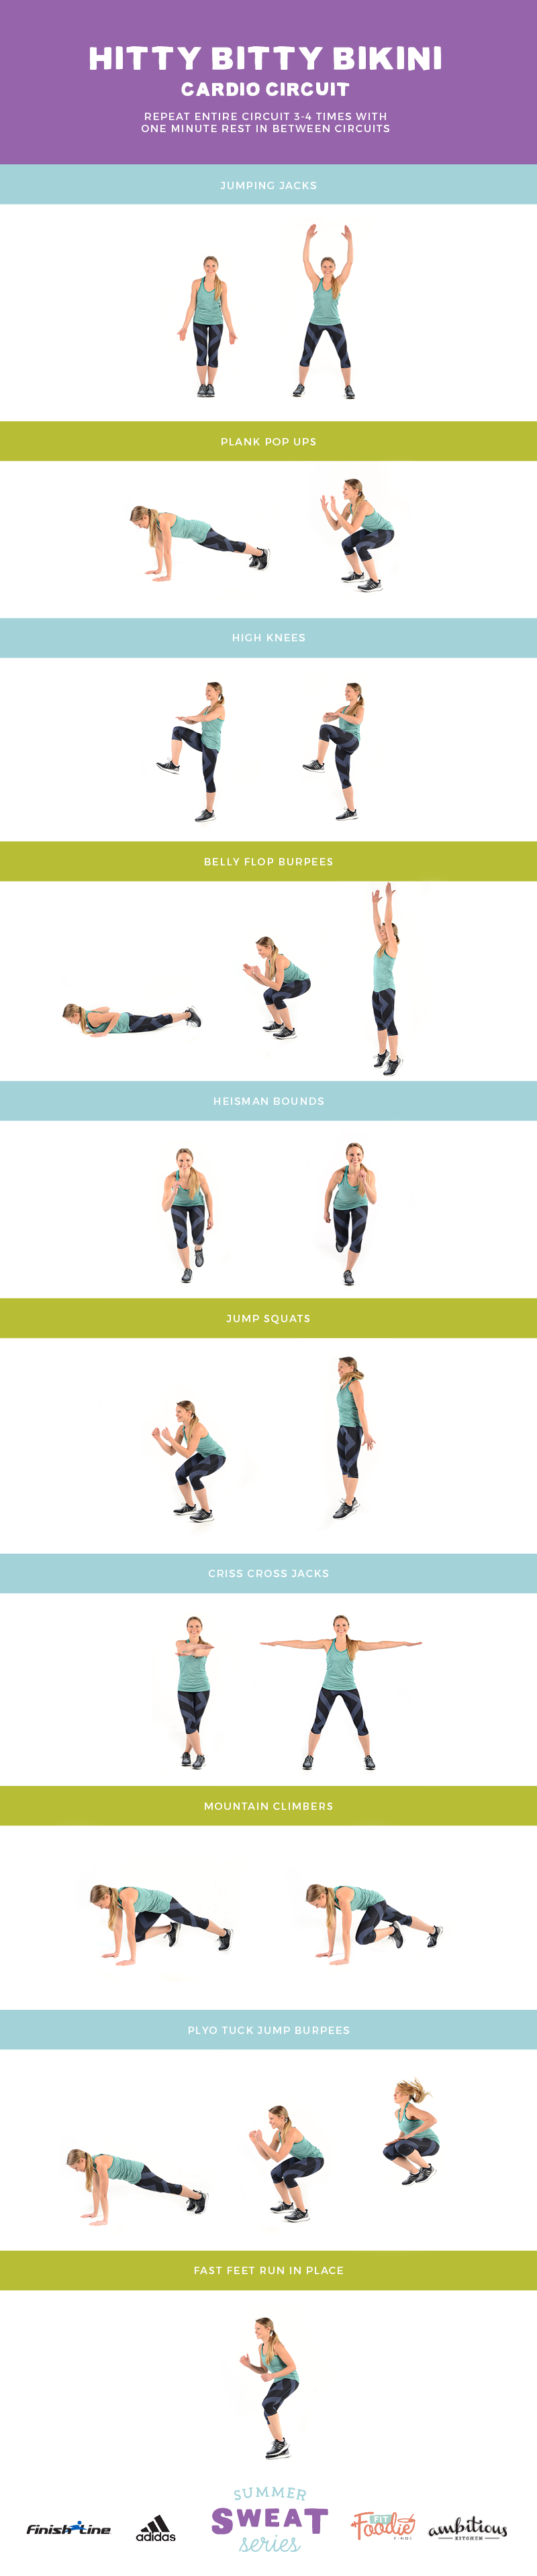 Summer Sweat Series BONUS workout. Heart pumping cardio circuit that burns calories and will get you in shape for Summer!